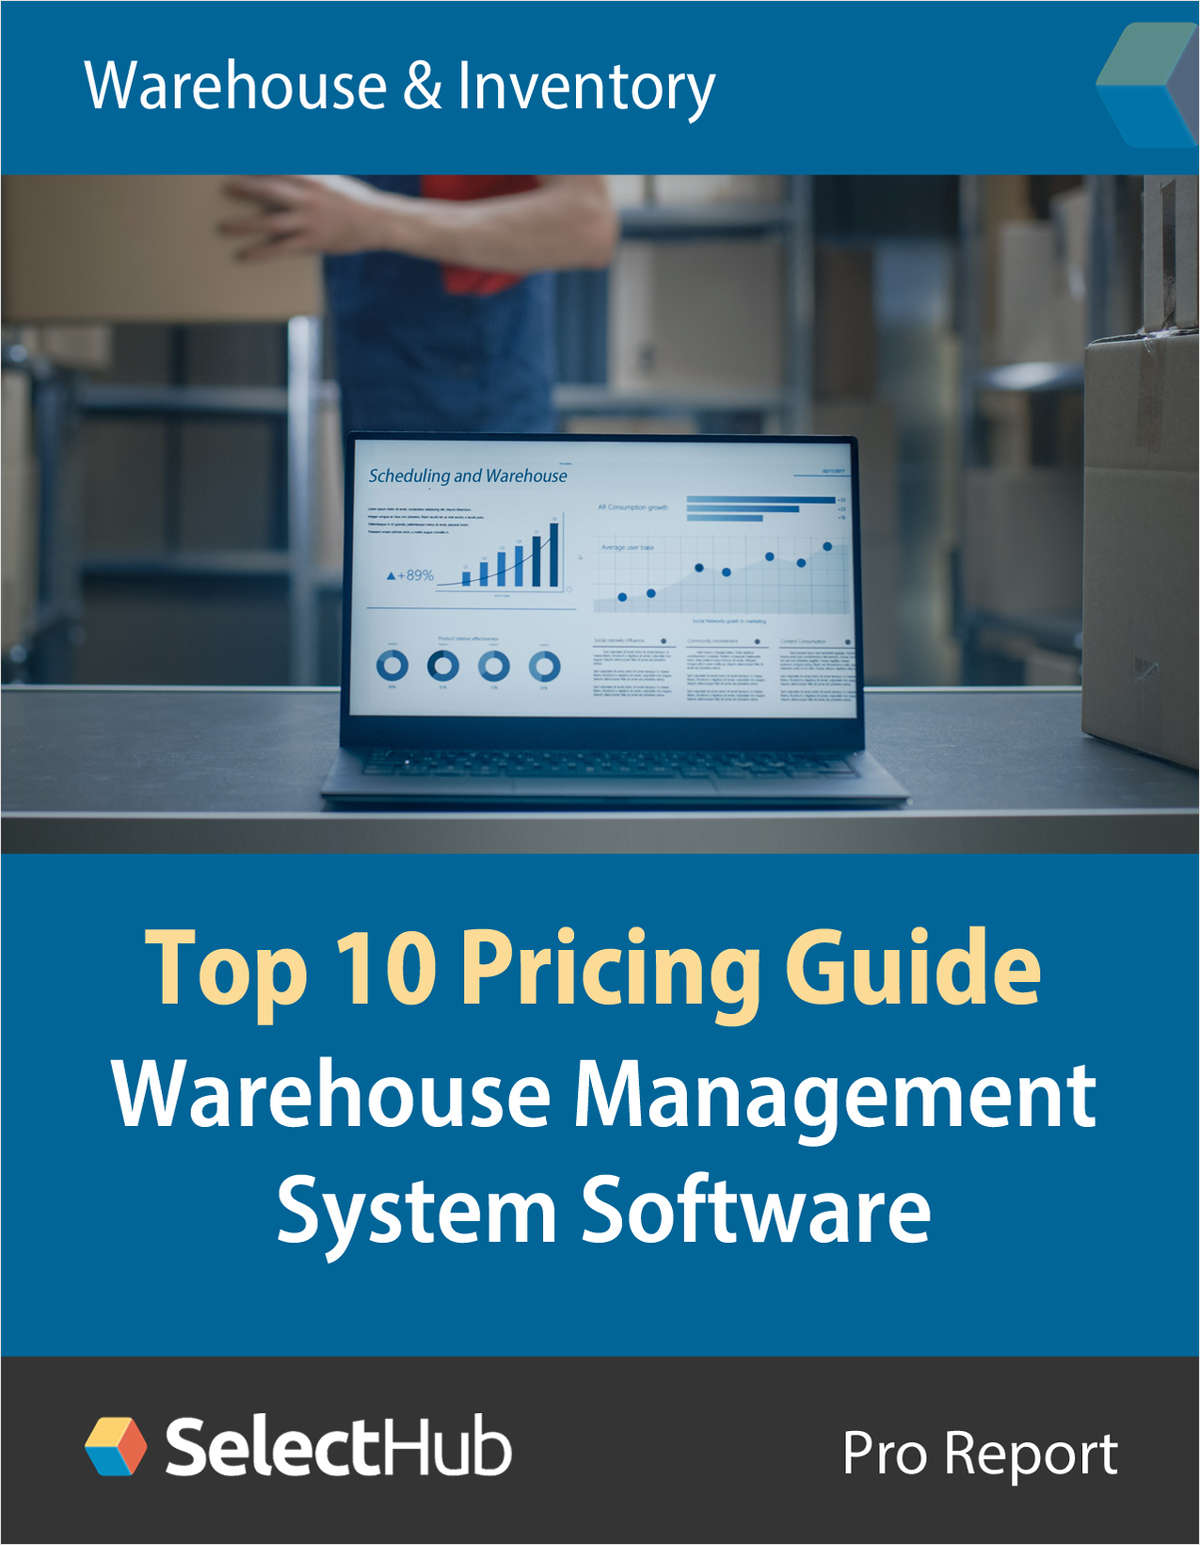 Warehouse Management System (WMS)―Top 10 Pricing Guide